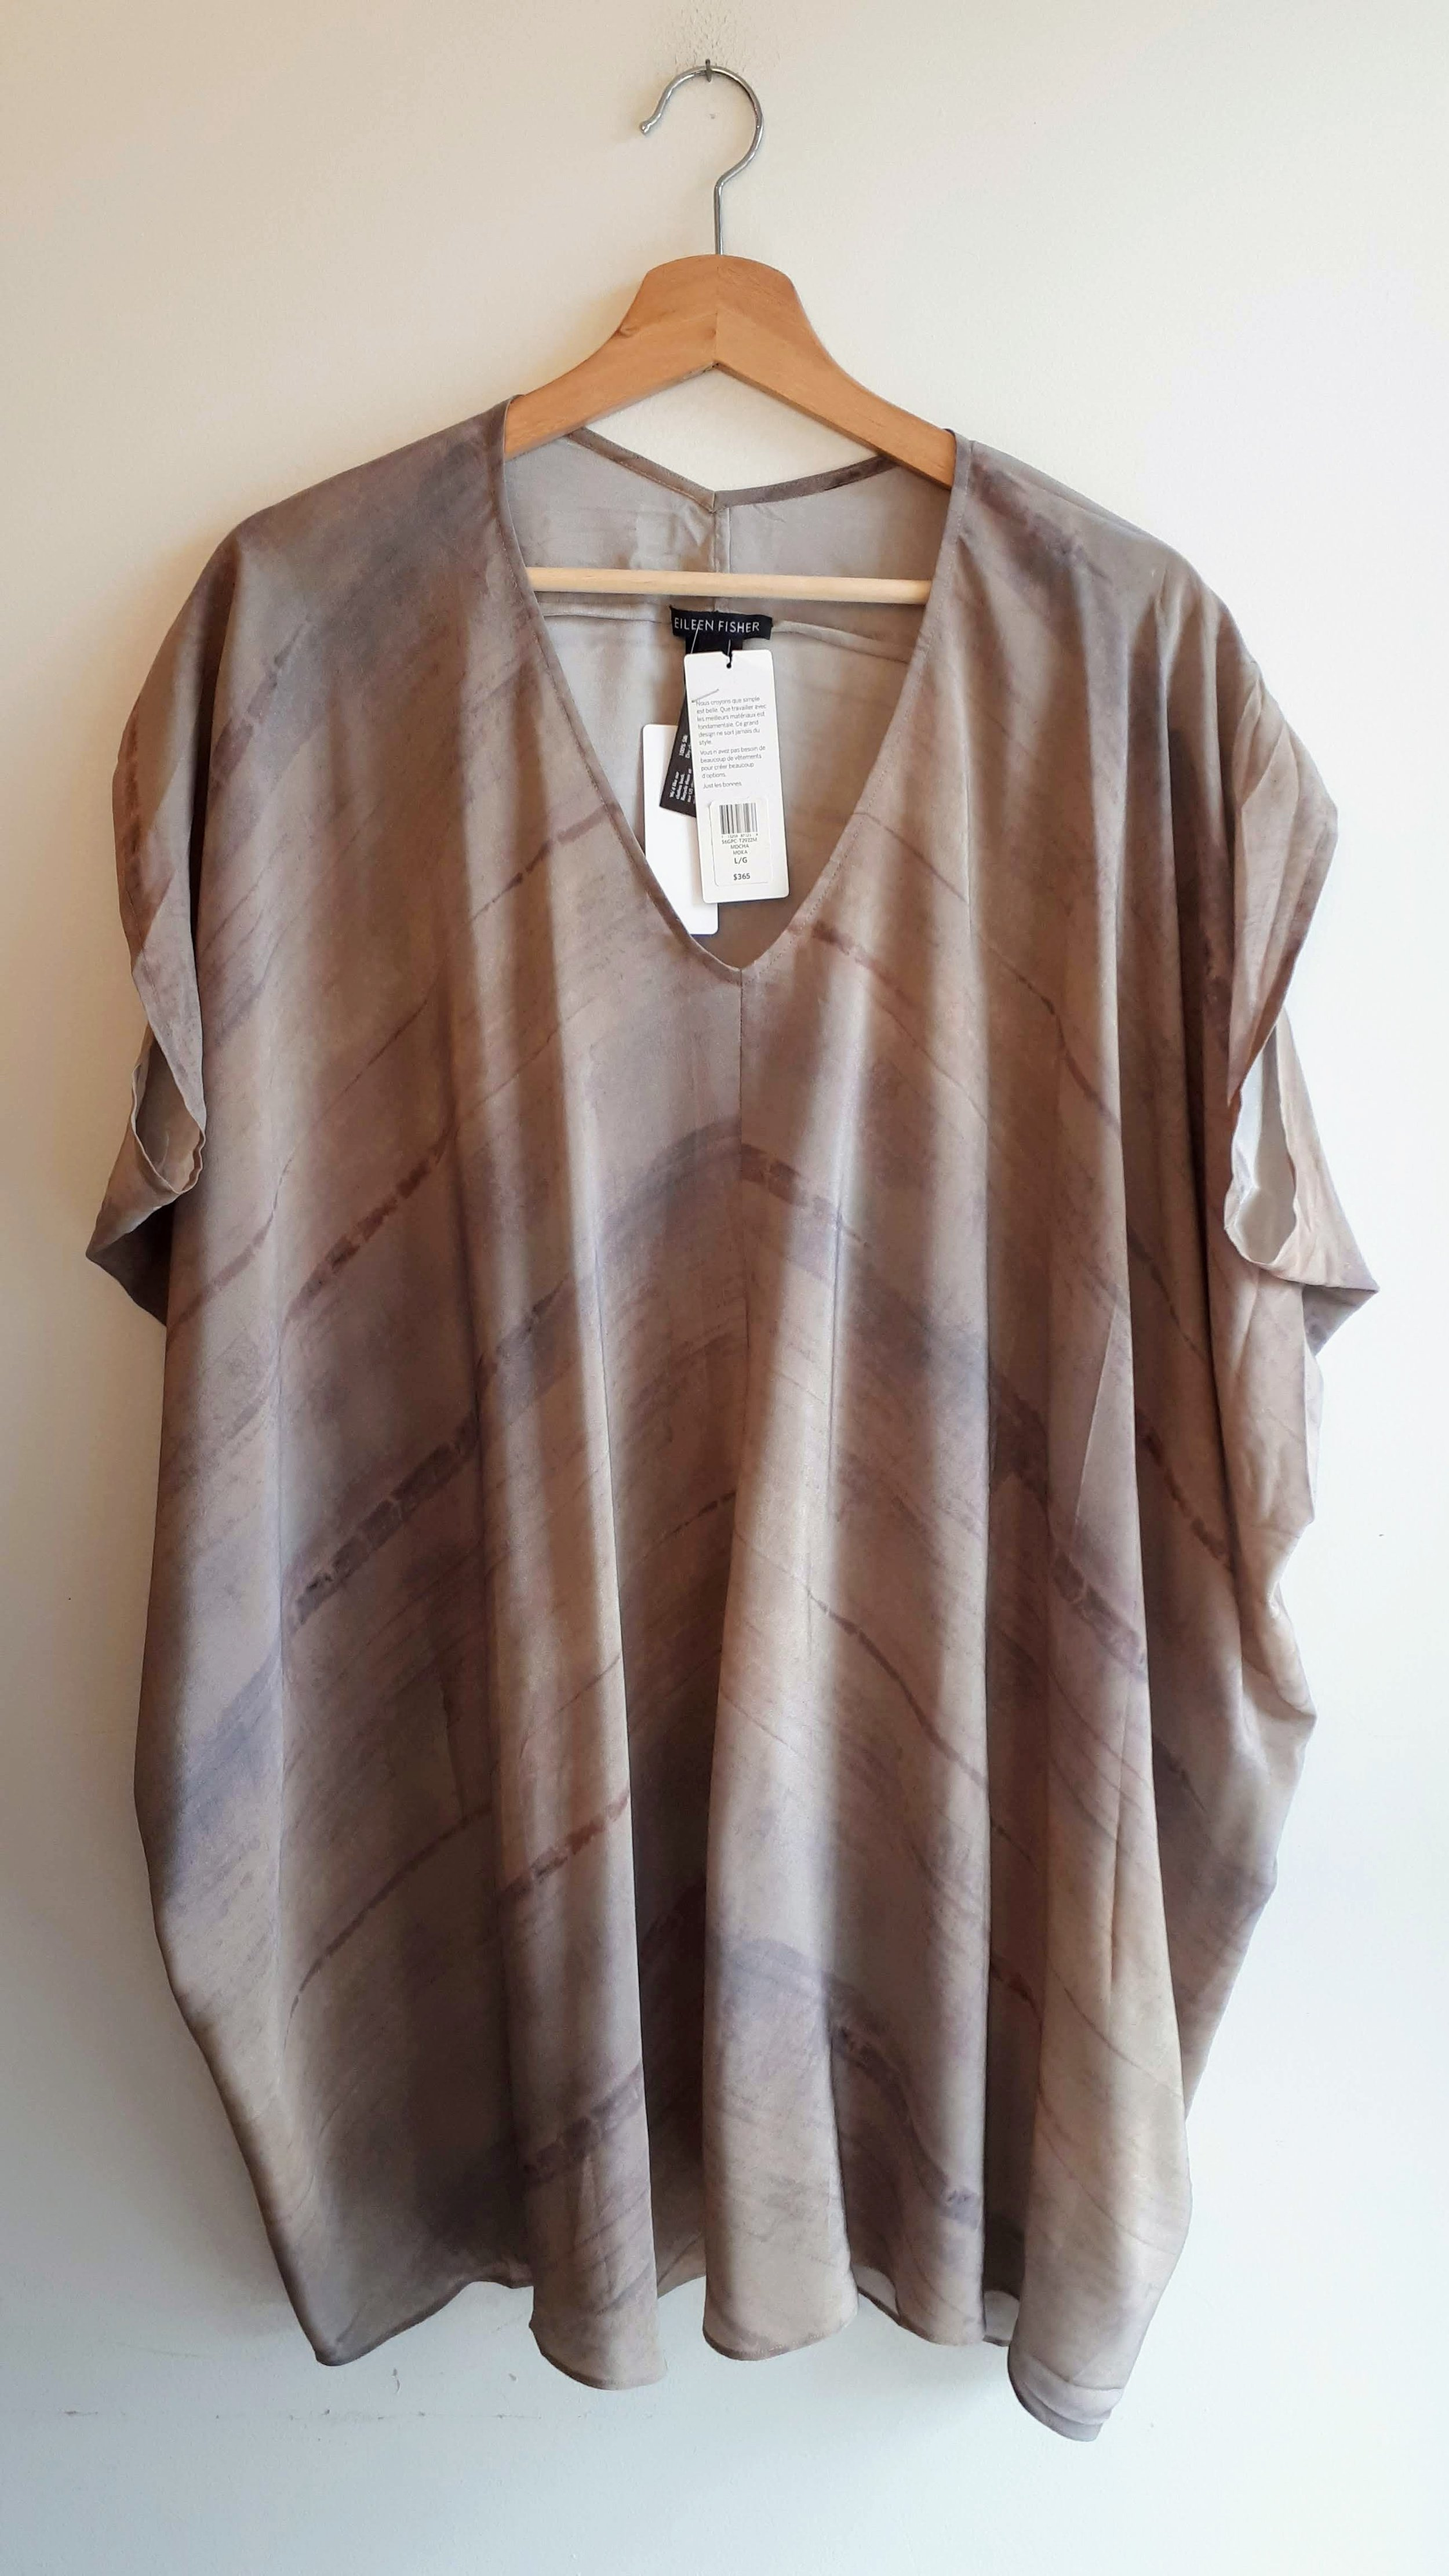 Eileen Fisher (NWT); Size L, $125